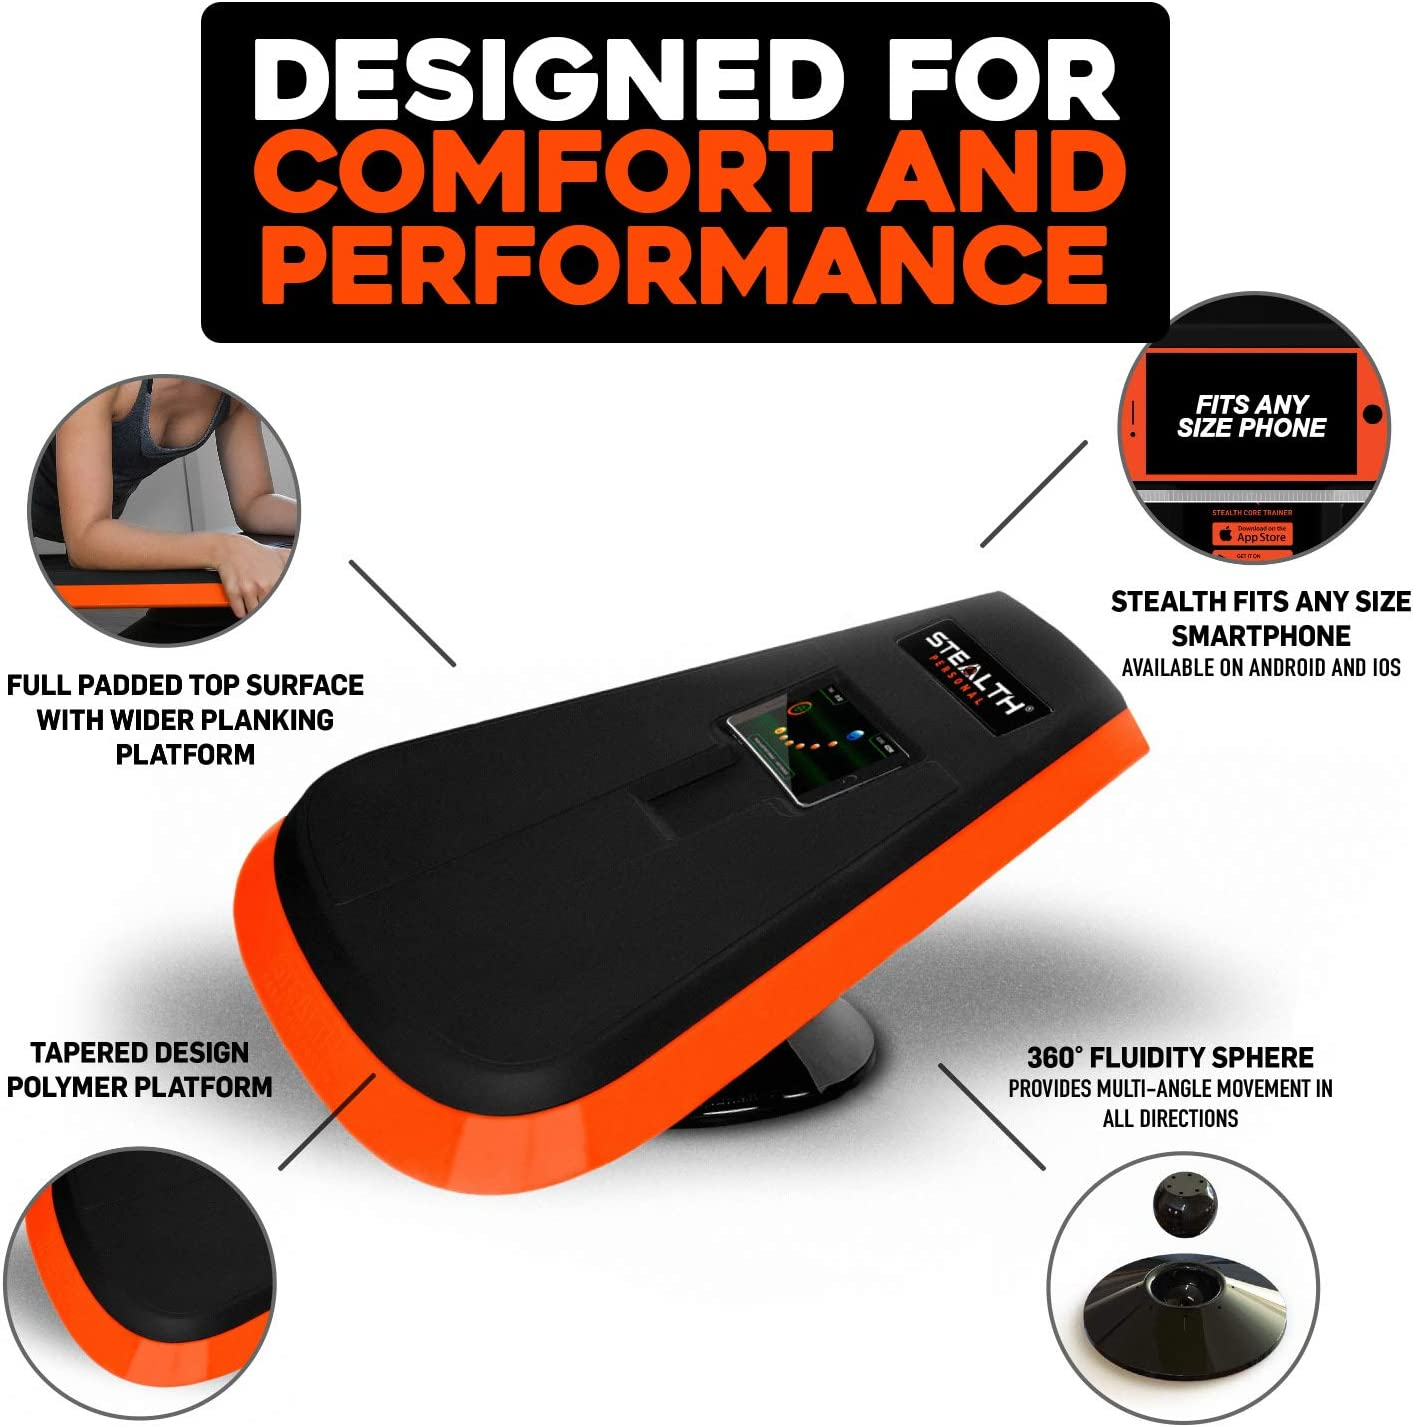 Stealth Core Trainer - Dynamic Core & Full Body Workout While Playing Games; Free iOS/Android Mobile Games App; Patented 360 Degree Planking Motion; Build Muscle & Lose Body Fat in 3 Min/Day (Orange) : Sports & Outdoors